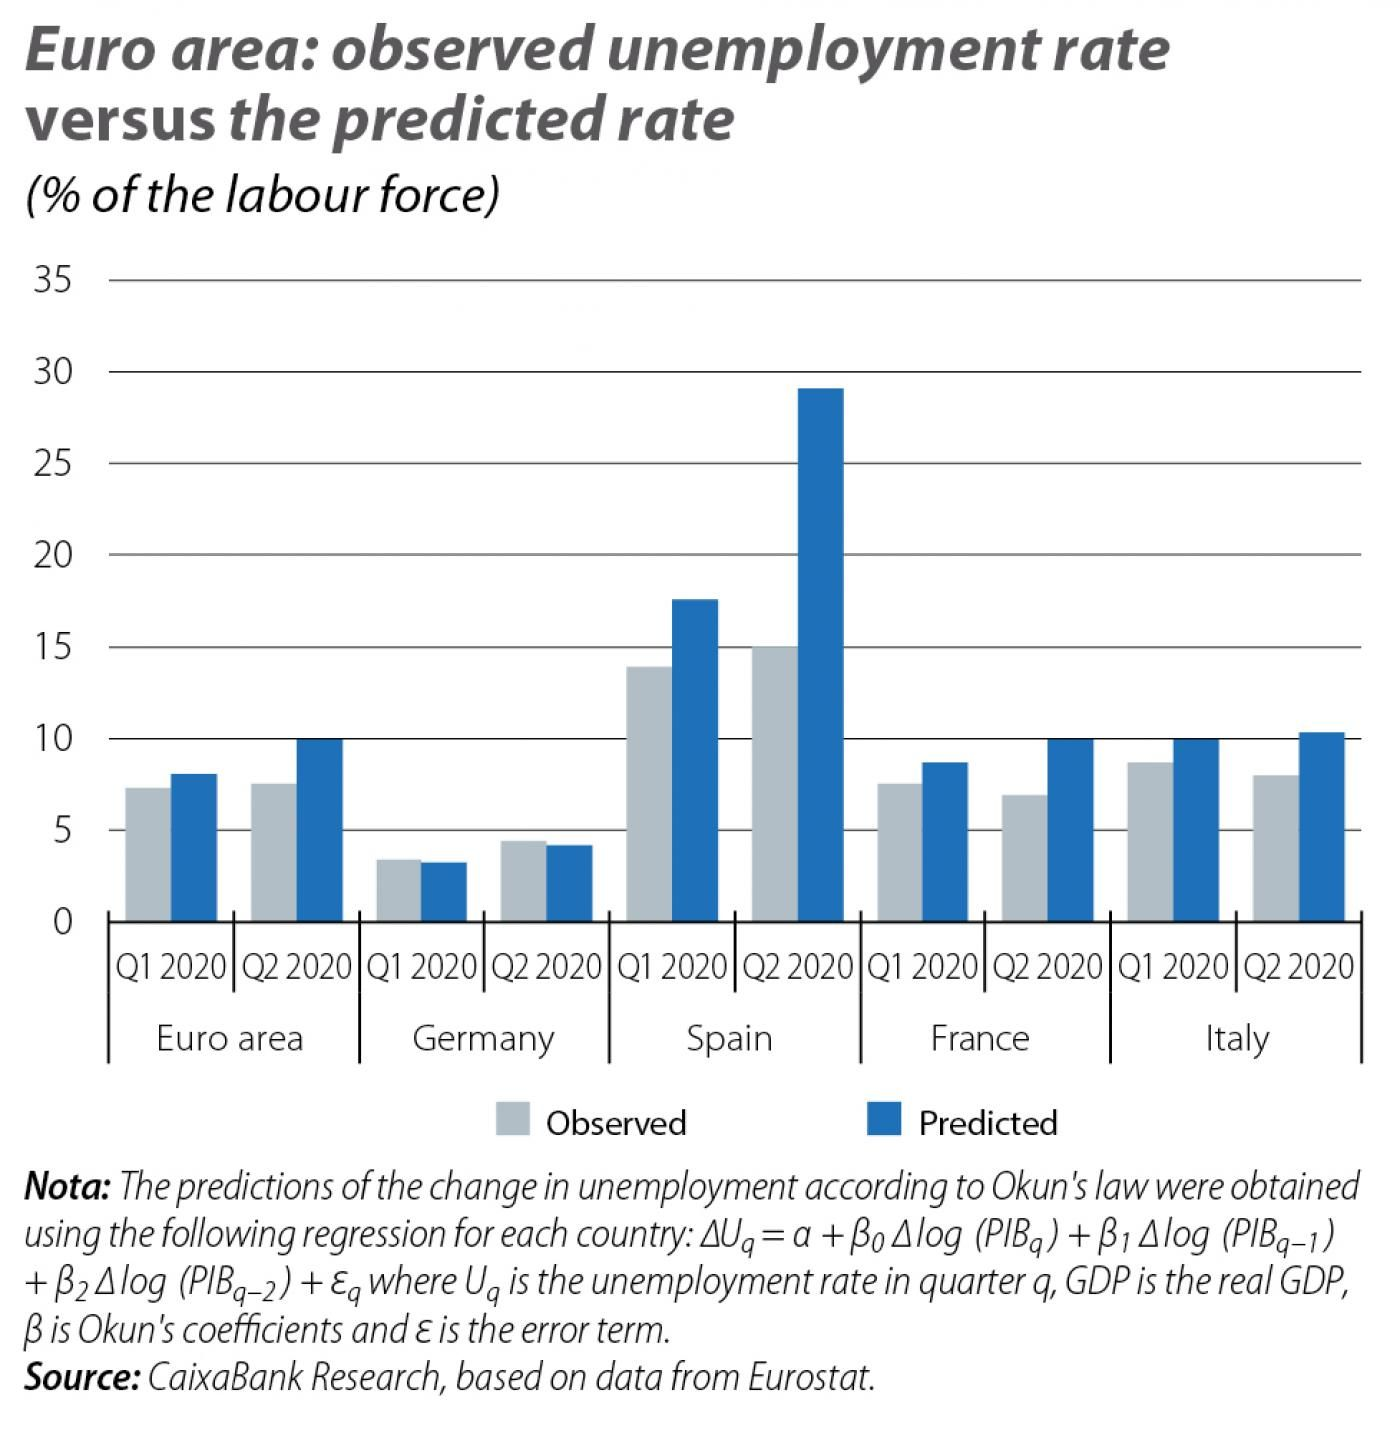 Euro area: observed unemployment rate versus the predicted rate